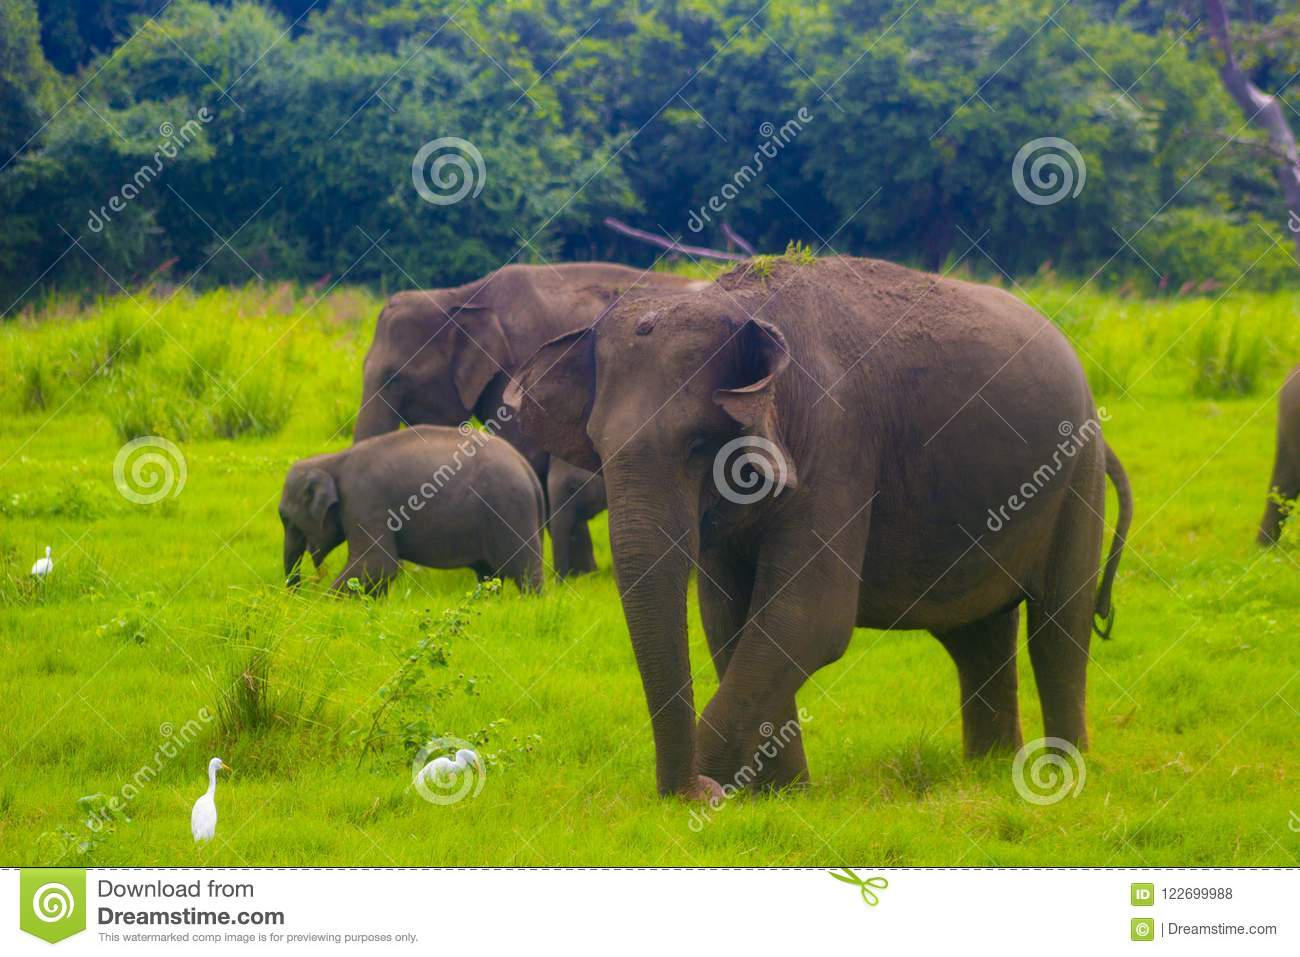 Parc national de minneriya sauvage asiatique d Eliphant - du Sri Lanka